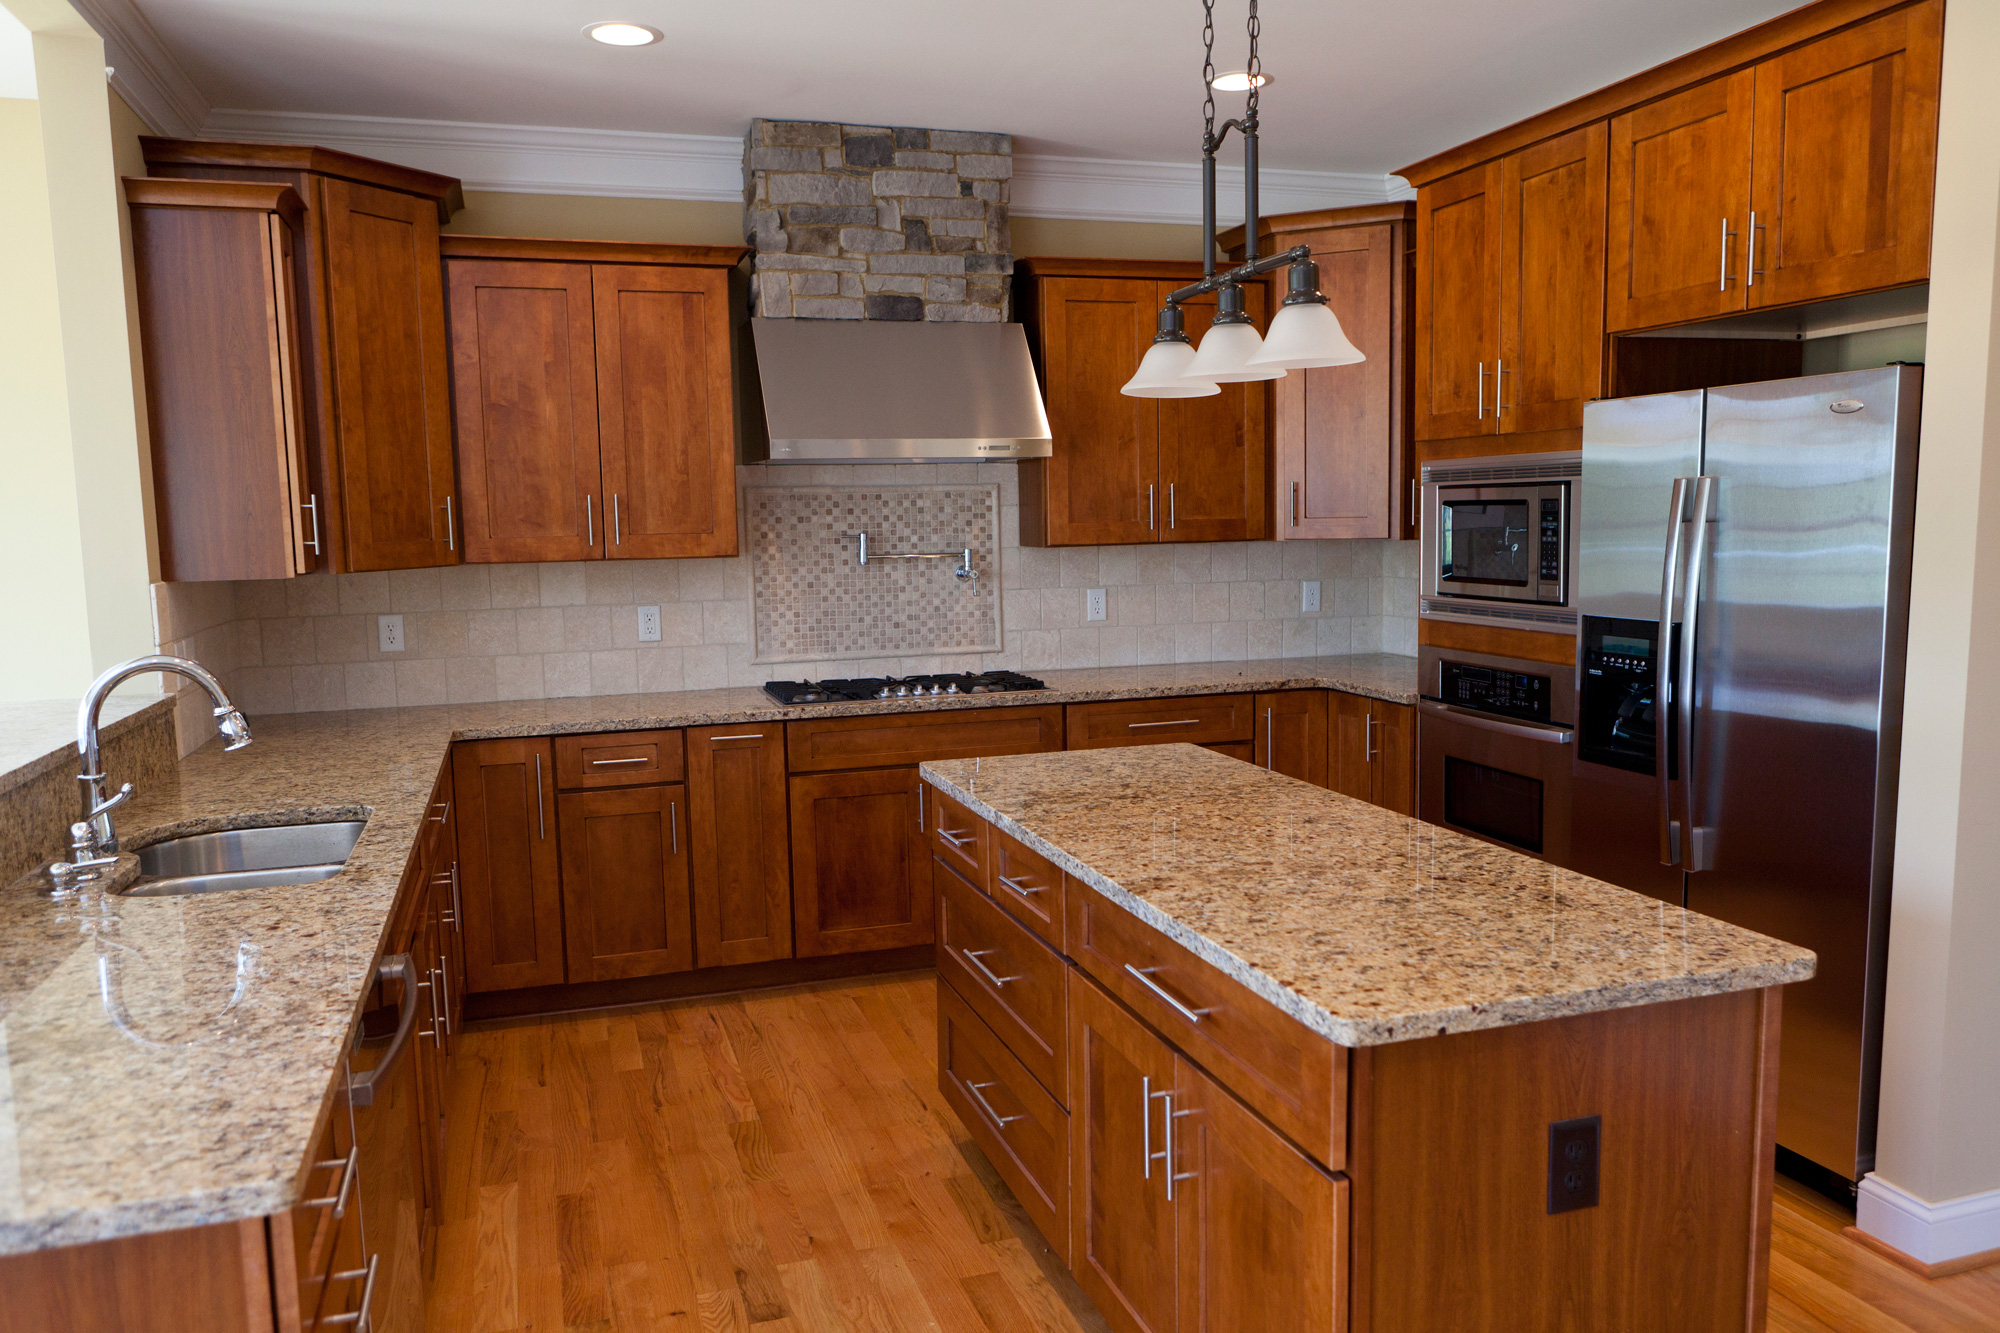 East palo alto contractor and home remodel company for Kitchen home remodeling